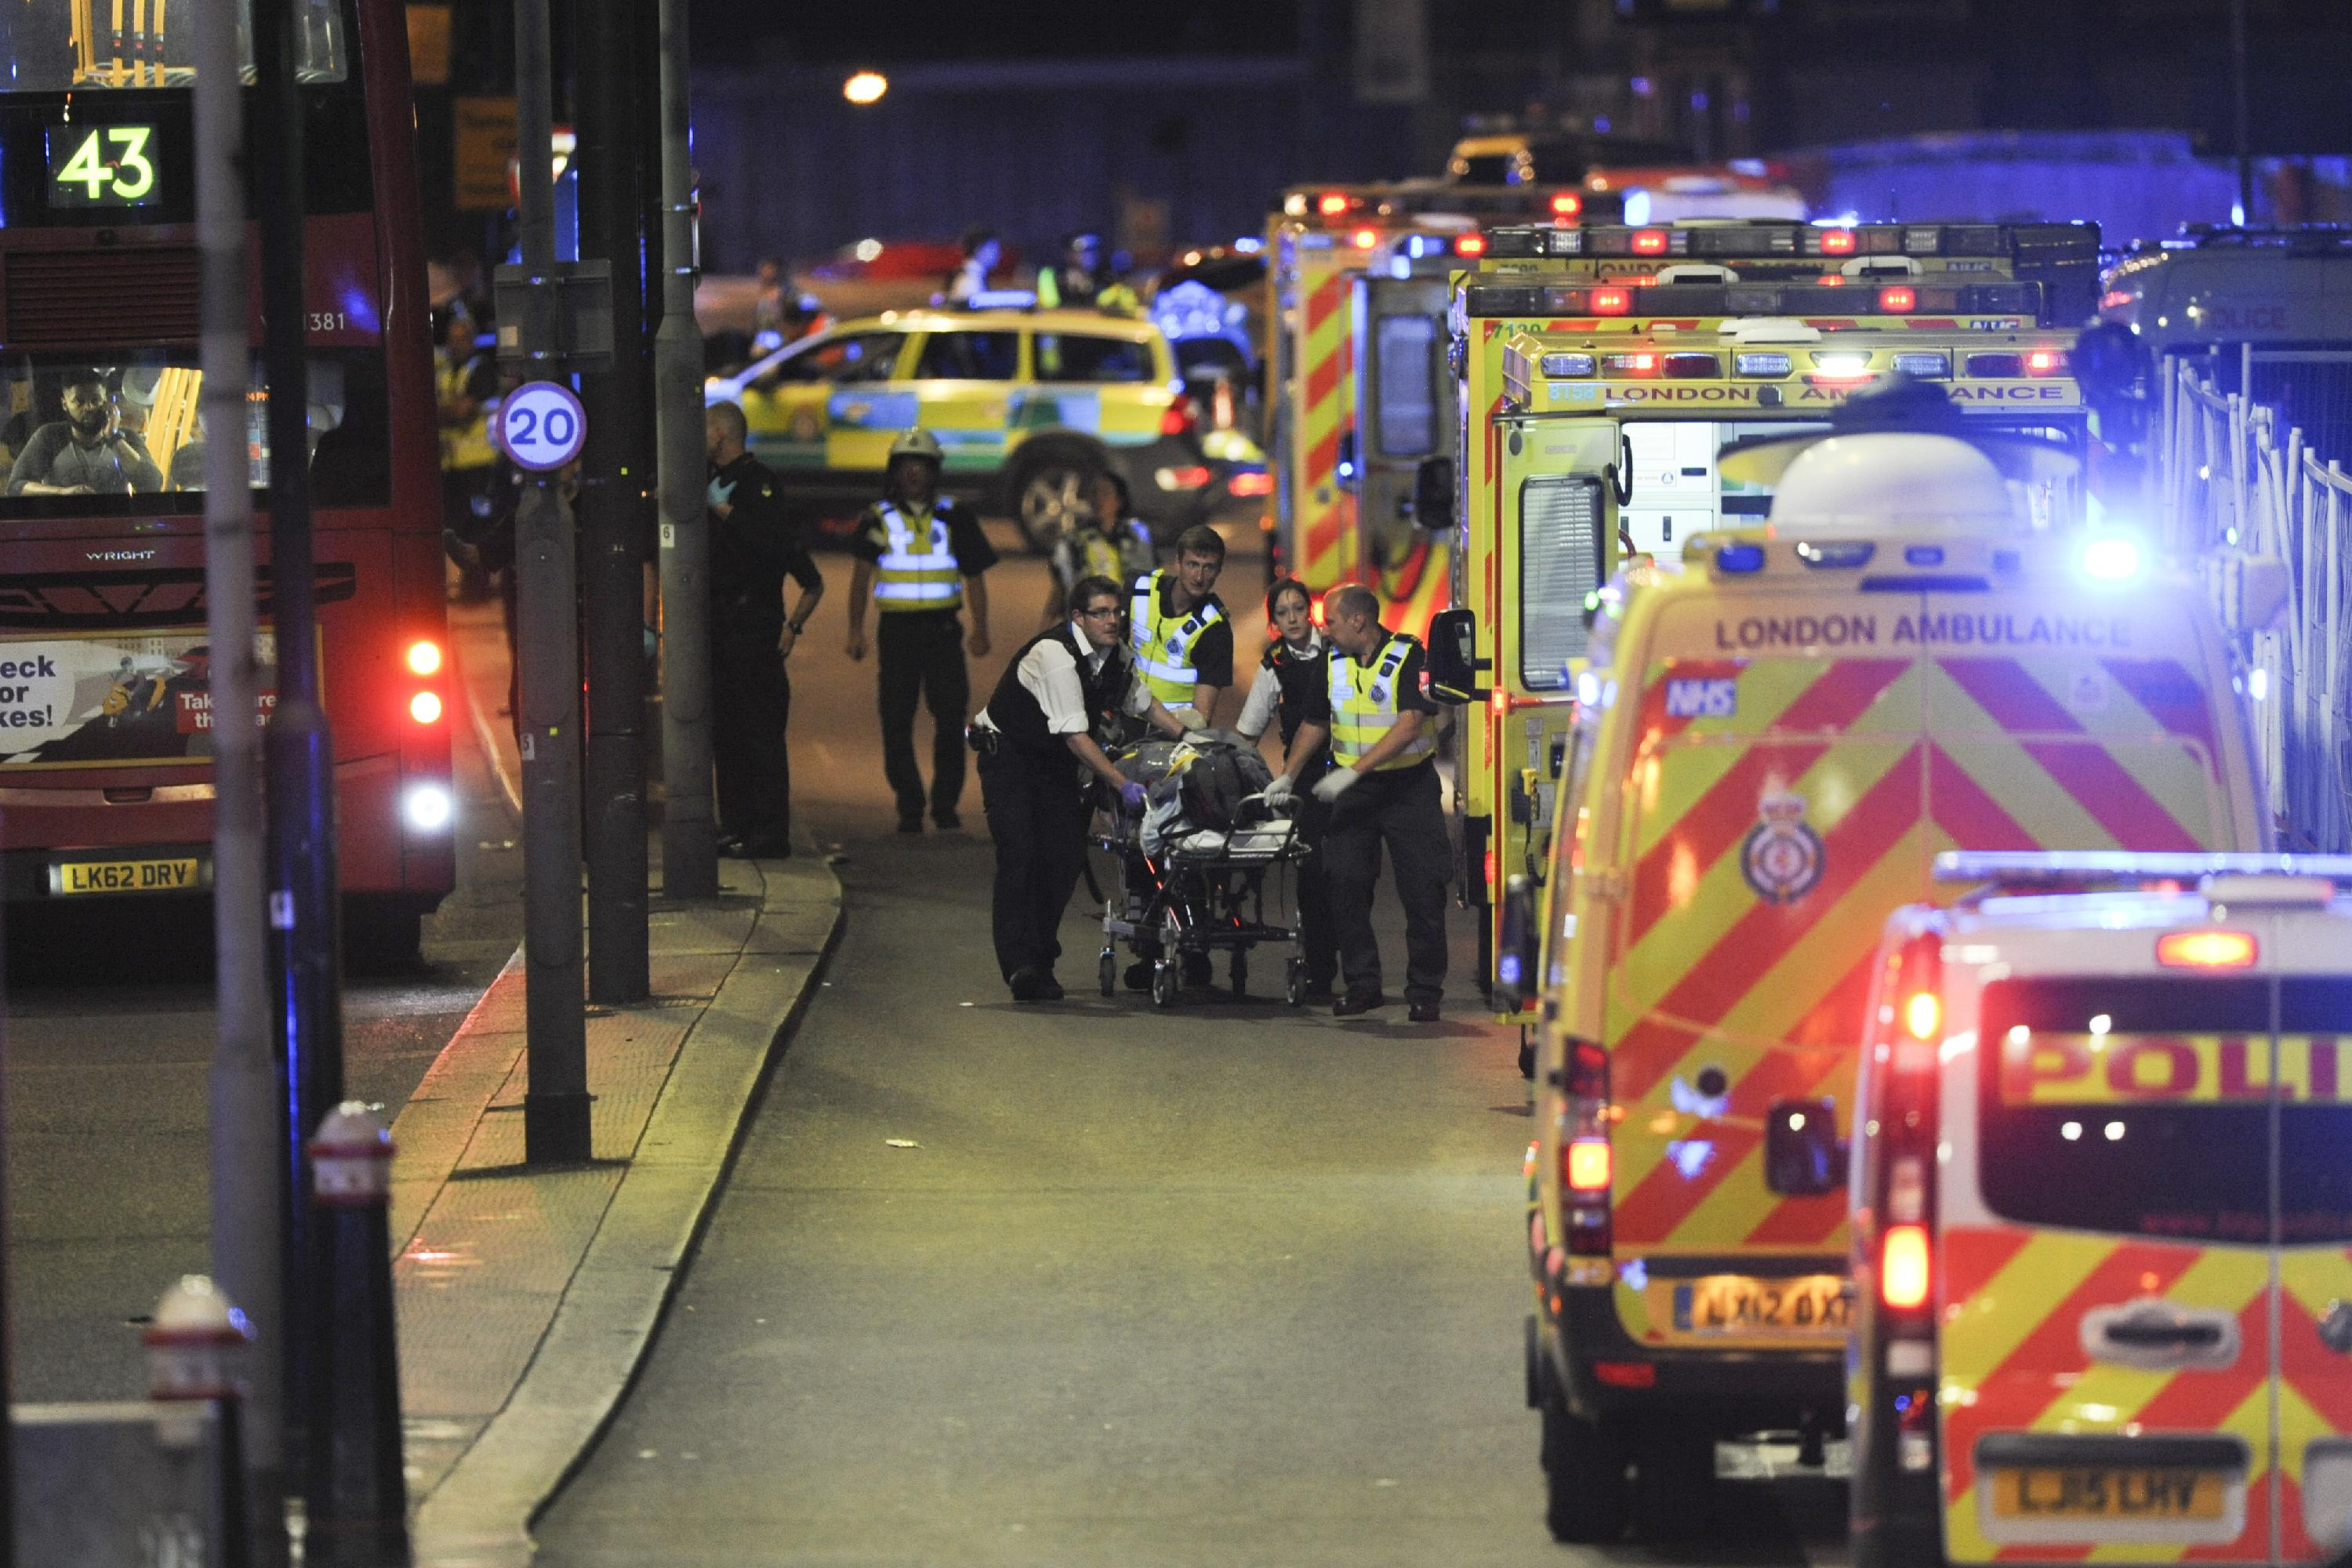 attaque-terroriste-a-londres/blesses-attentats-de-londres-b16d92-01x-jpeg.jpeg